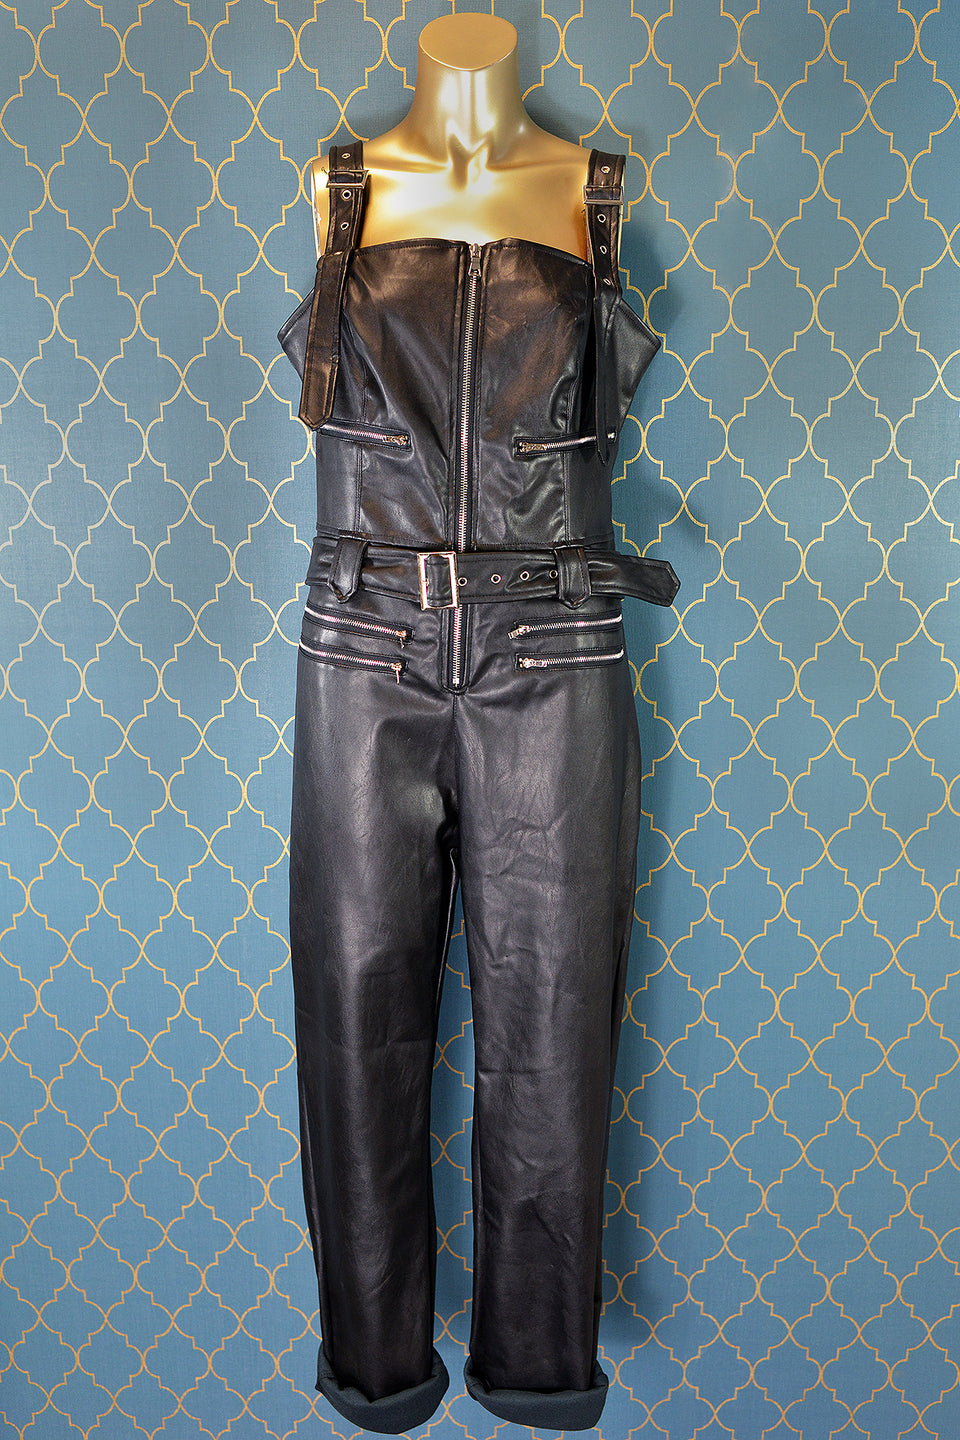 PRETTY LITTE THING Faux Black Leather Dungarees Jumpsuit, Size 8 (36). New with tags.